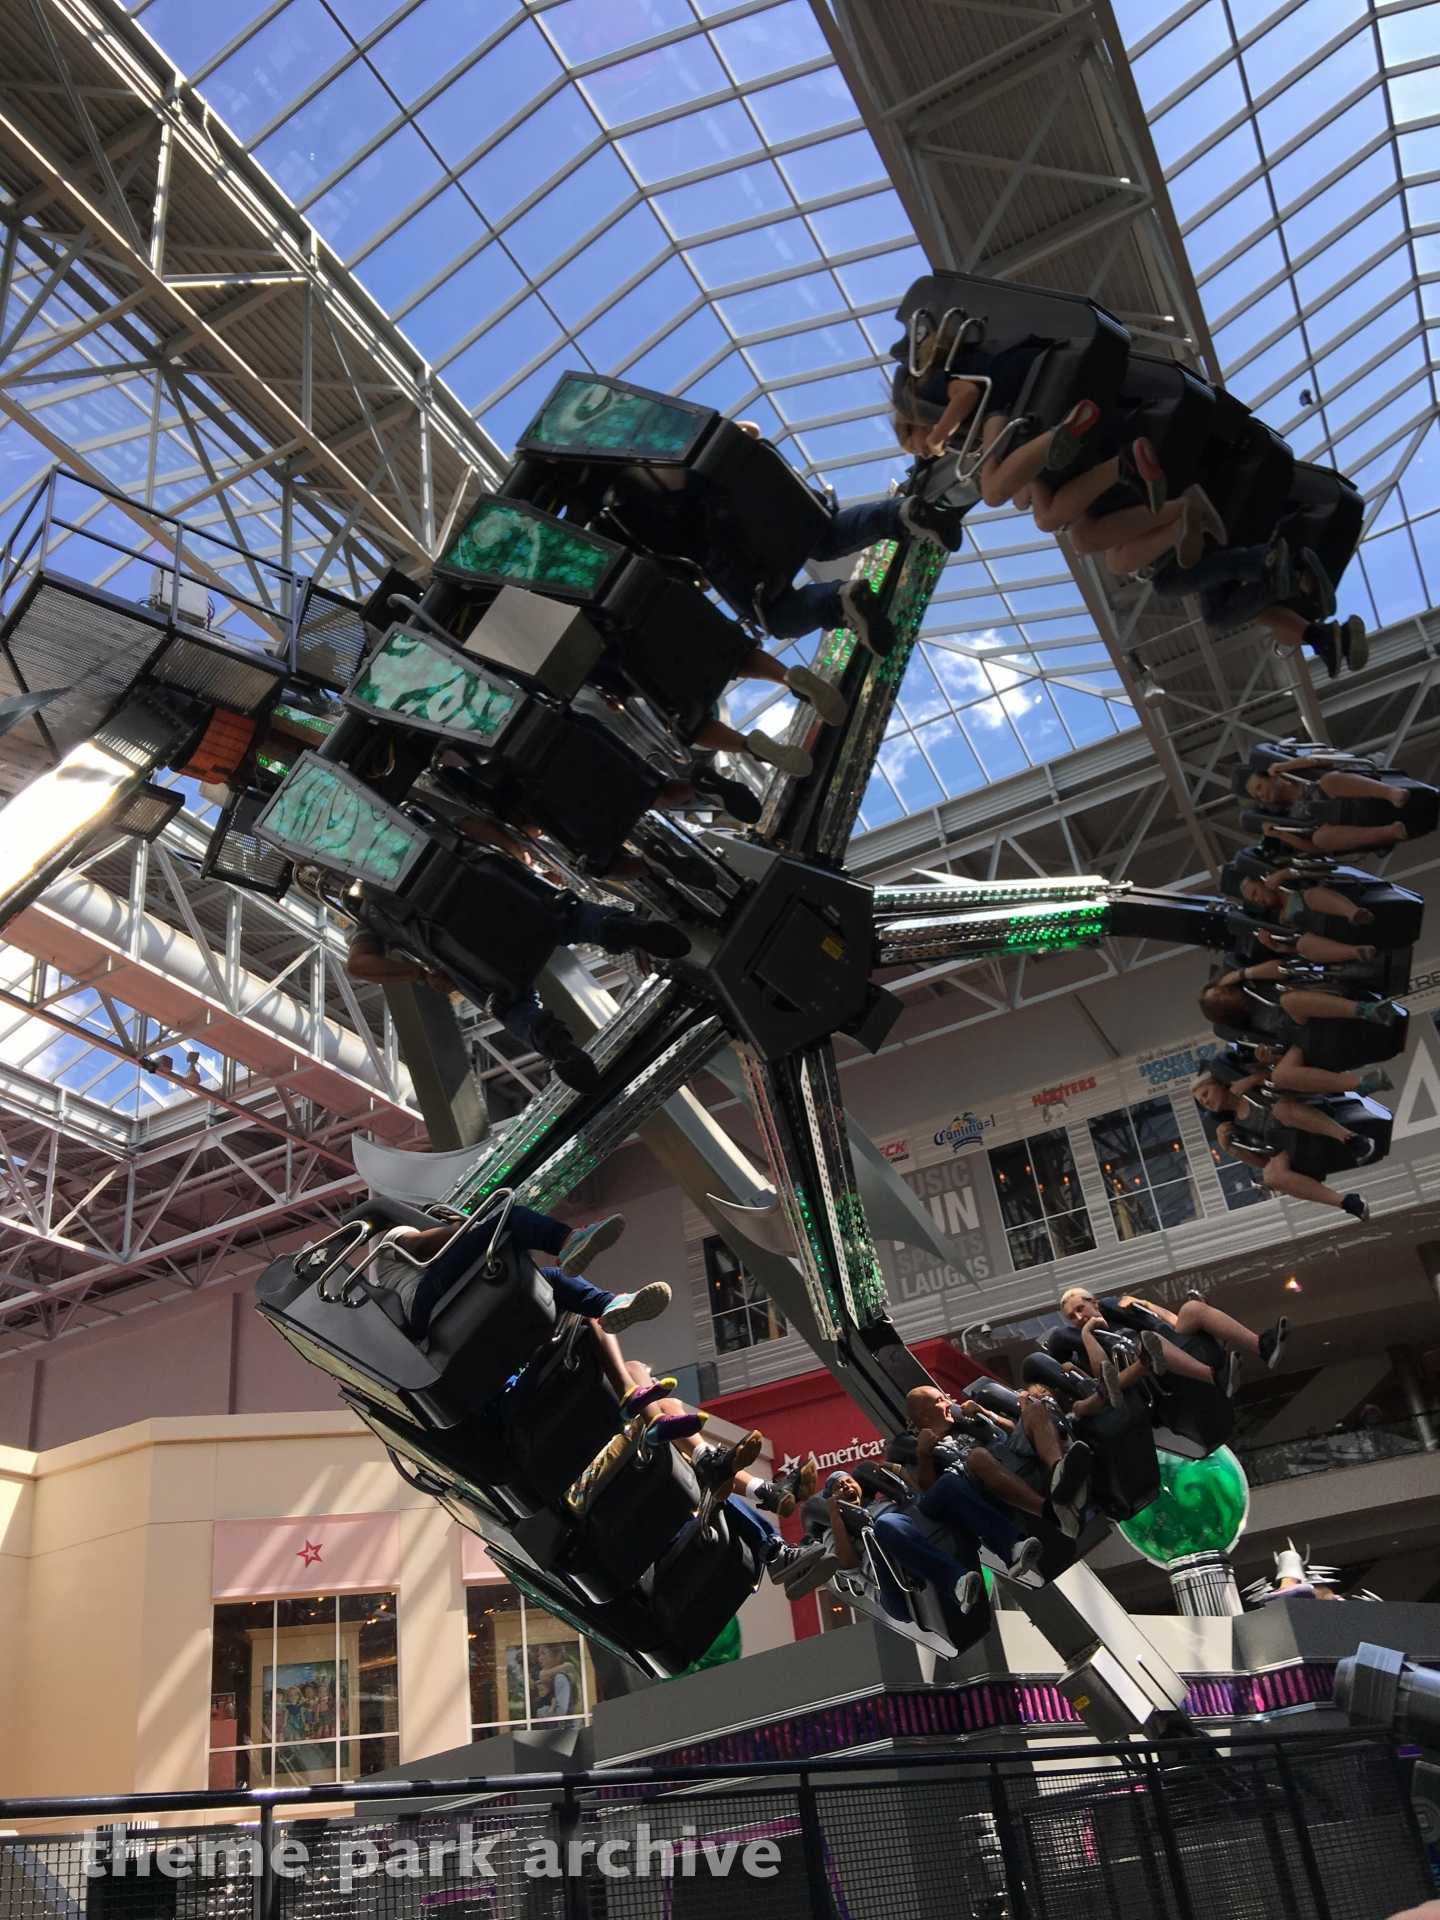 Shredder's Mutant Masher at Nickelodeon Universe at Mall of America